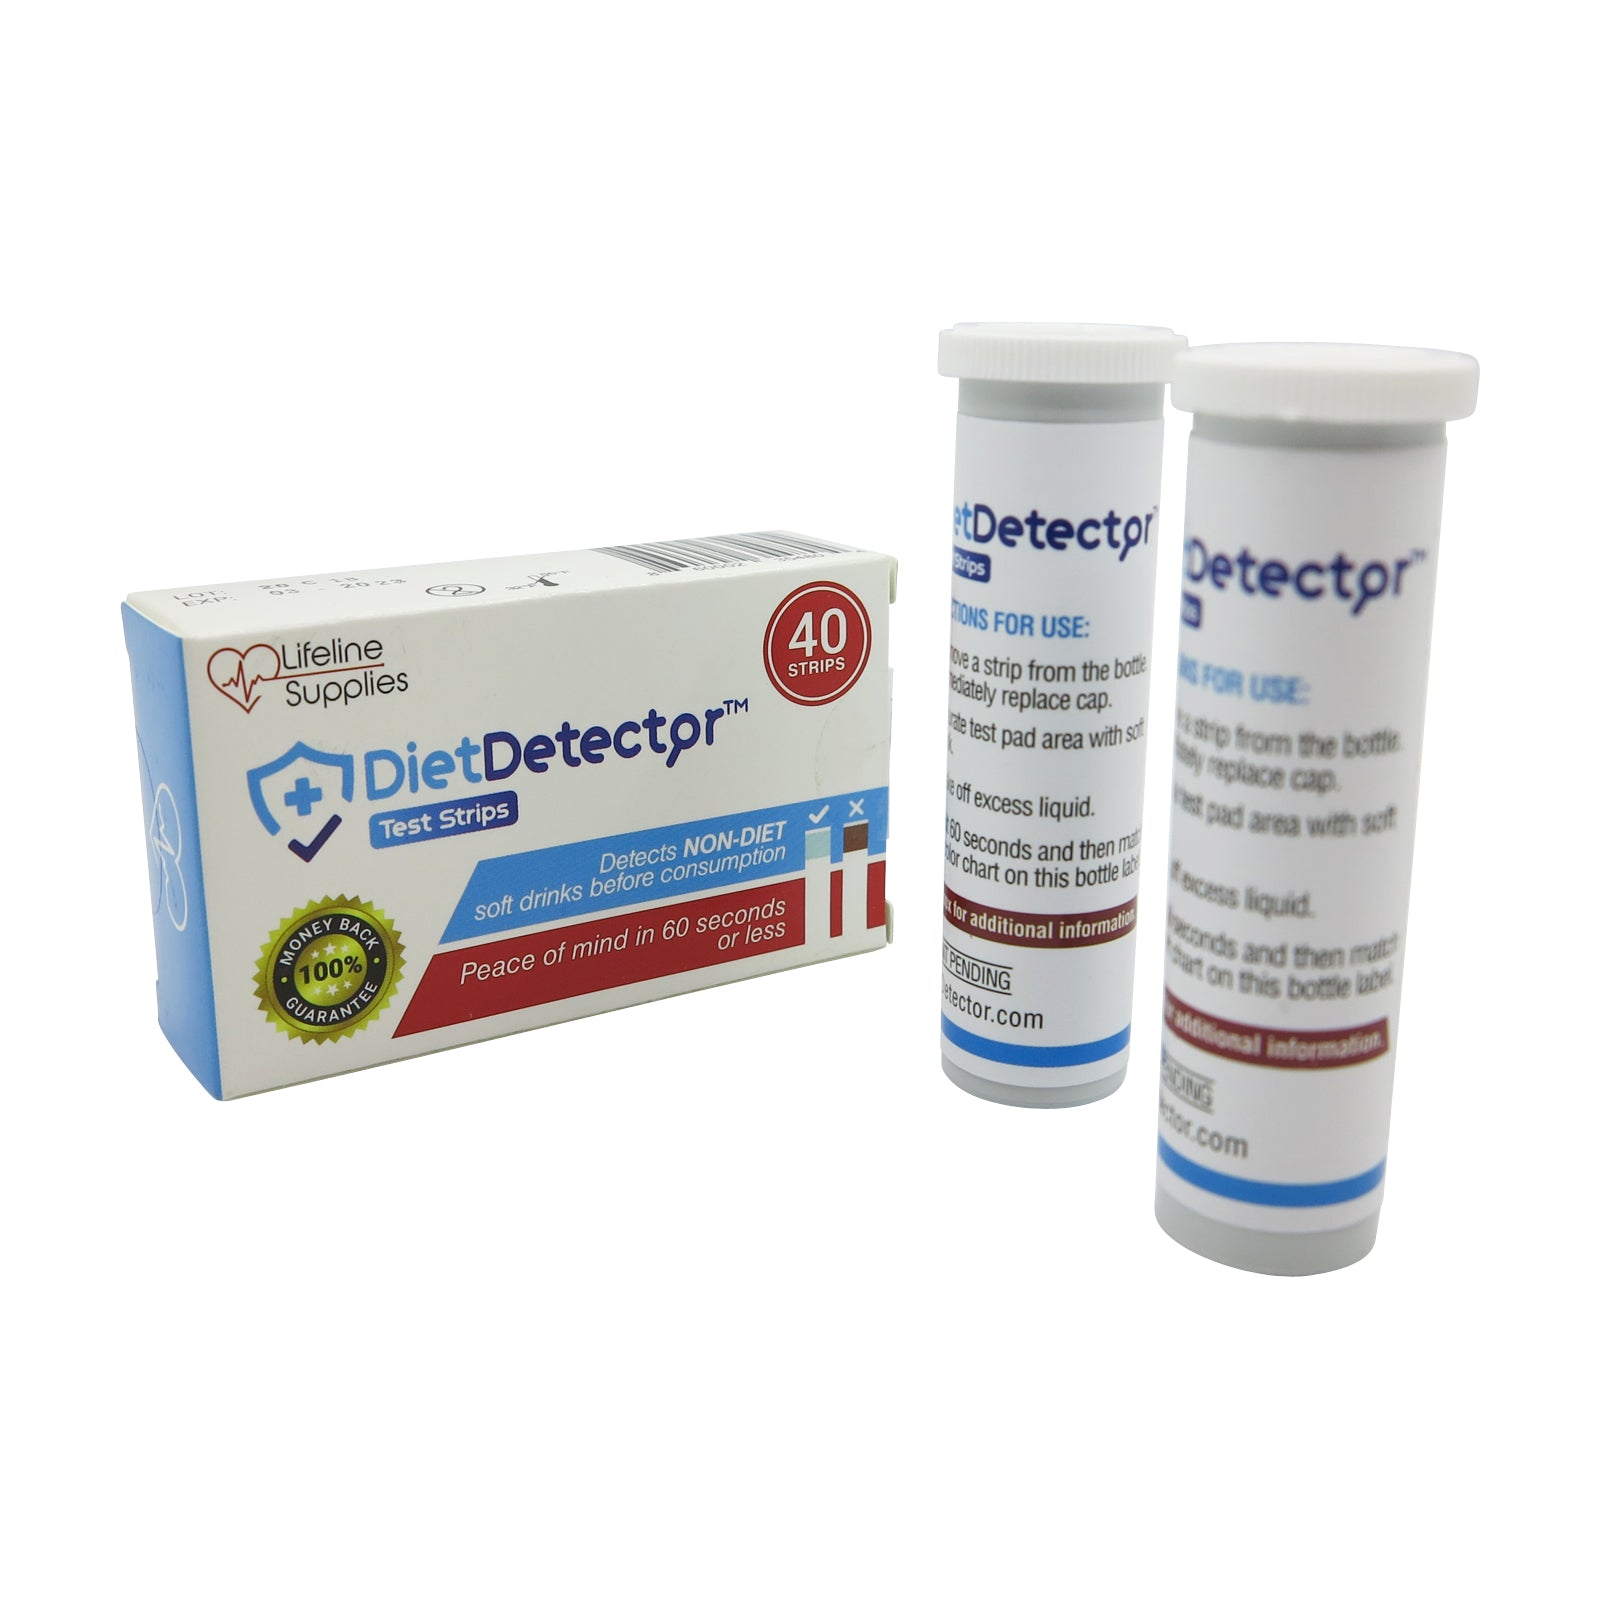 DIET DOCTOR - NON-DIET SOFT DRINK TEST STRIPS (40)